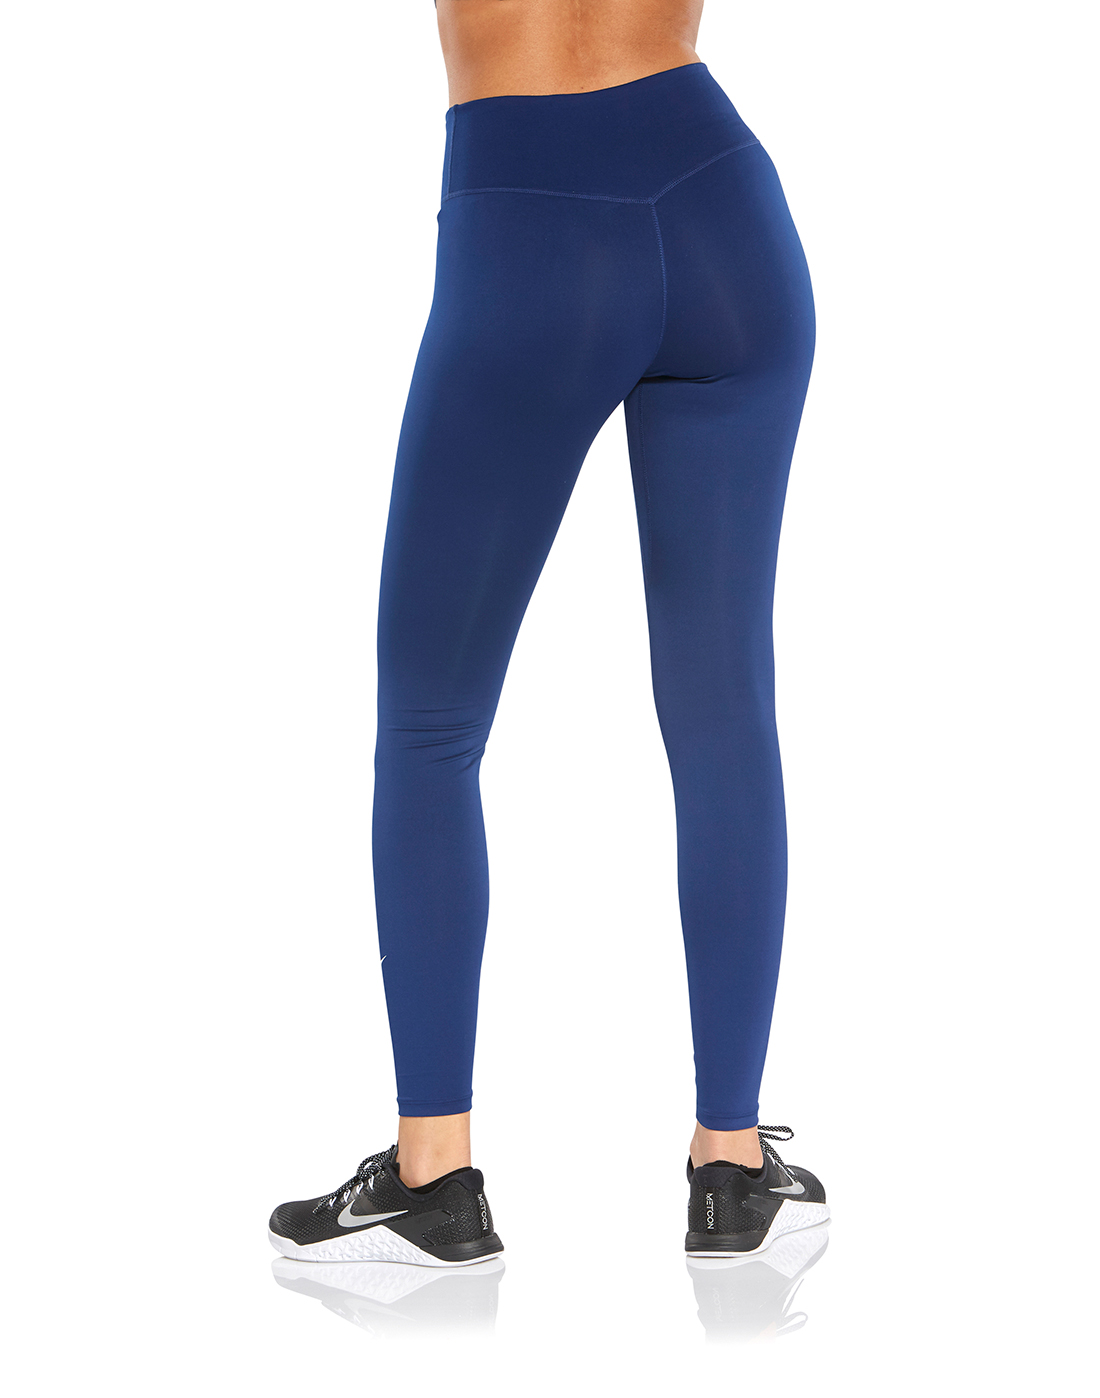 Womens One Tight · Womens One Tight ... 8e18689bd8